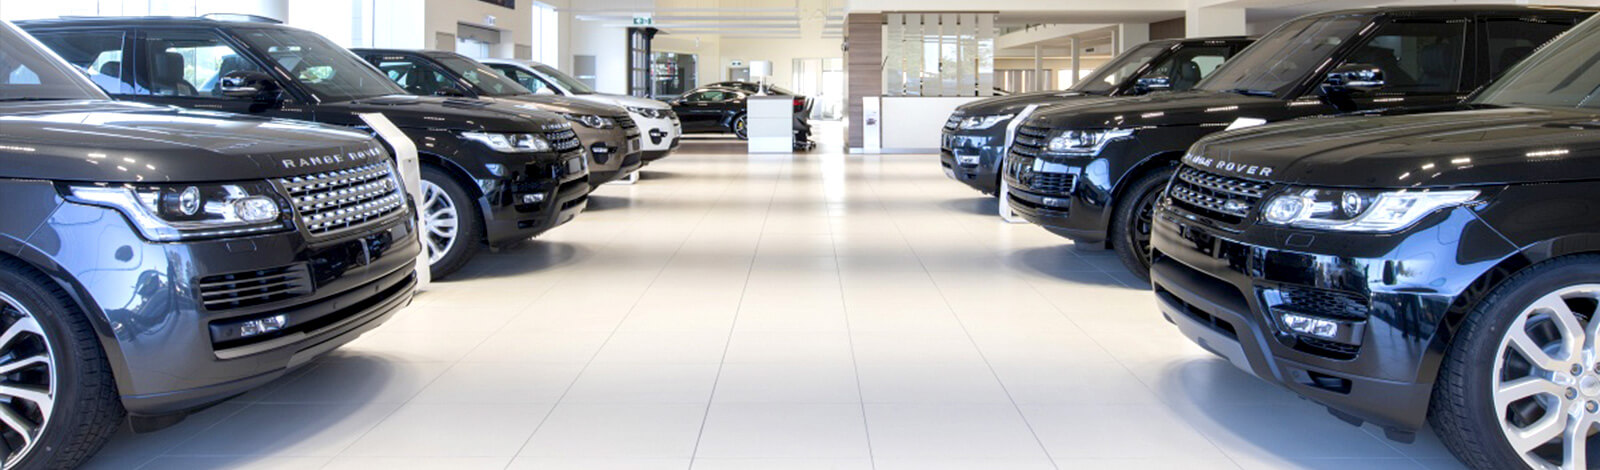 Alto Opens New Jlr Showroom